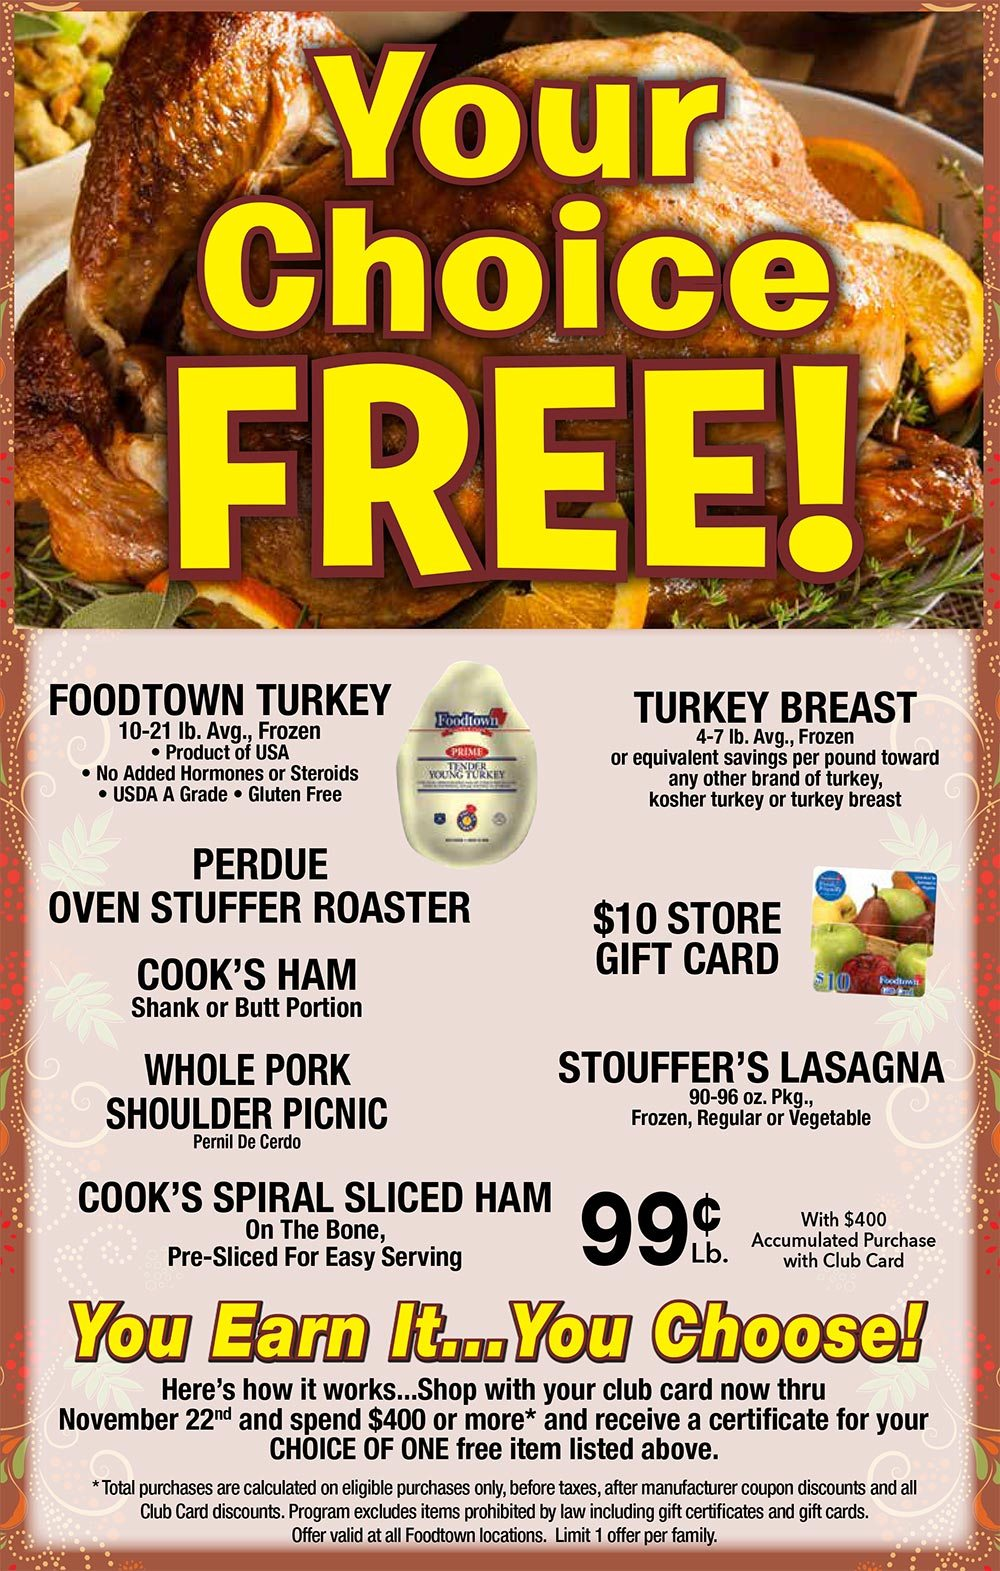 Foodtown is Your Local Grocery Store with a 2018 Turkey Promotion!